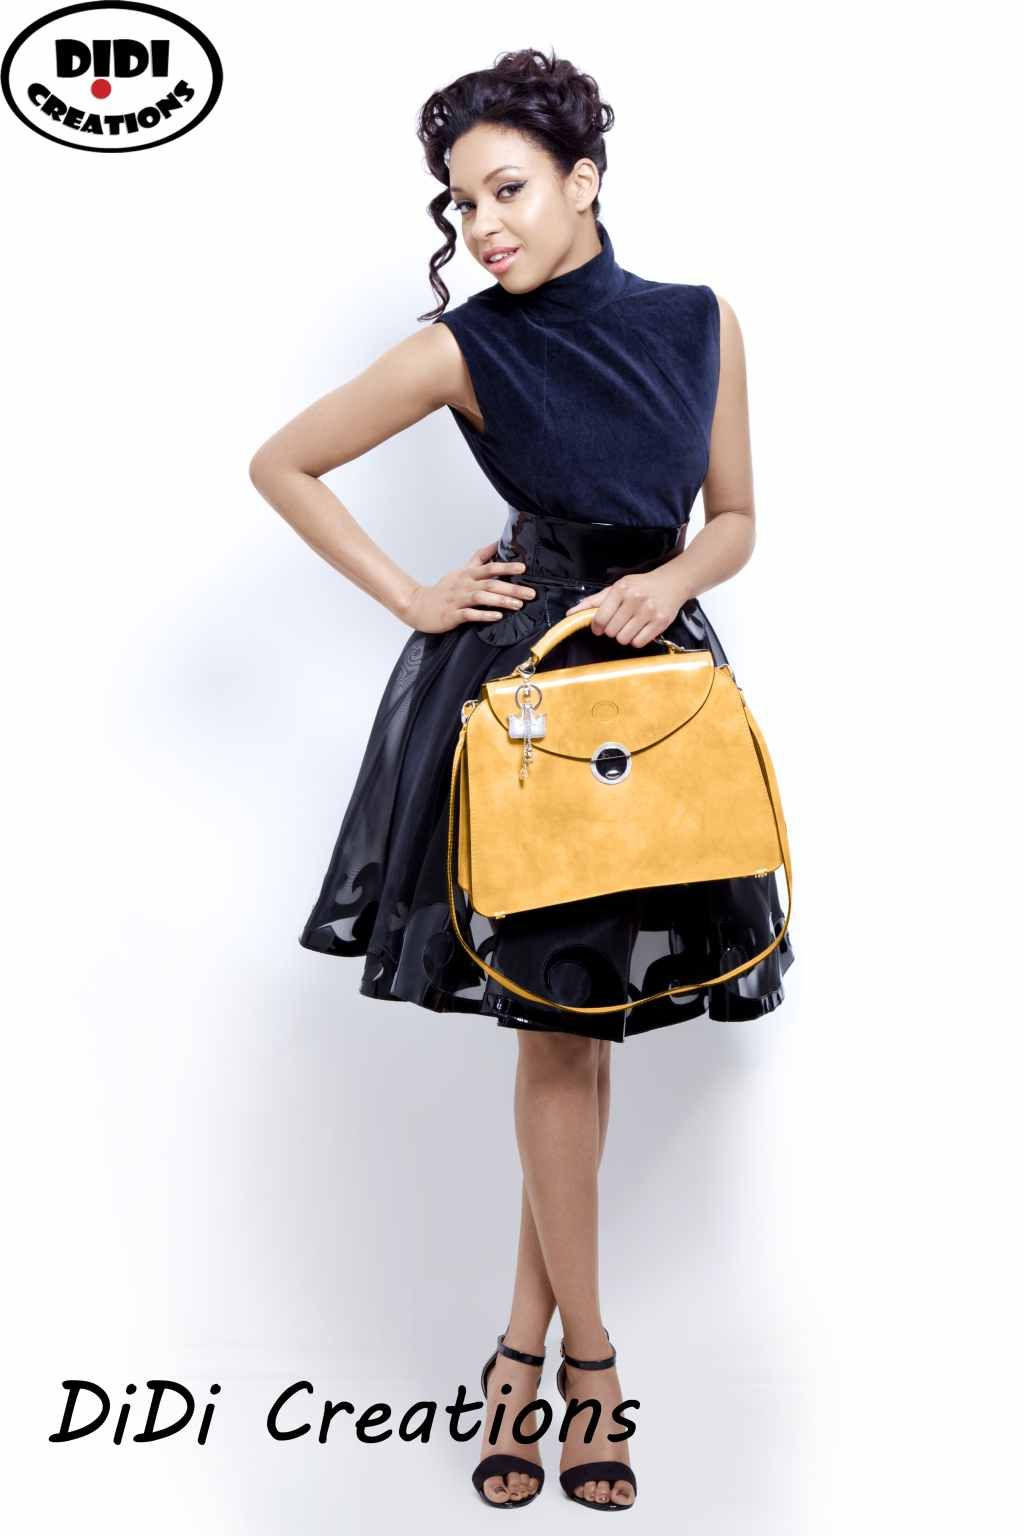 cheap|discount|wholesale} FENDI bags online collection, fast delivery cheap burberry handbags